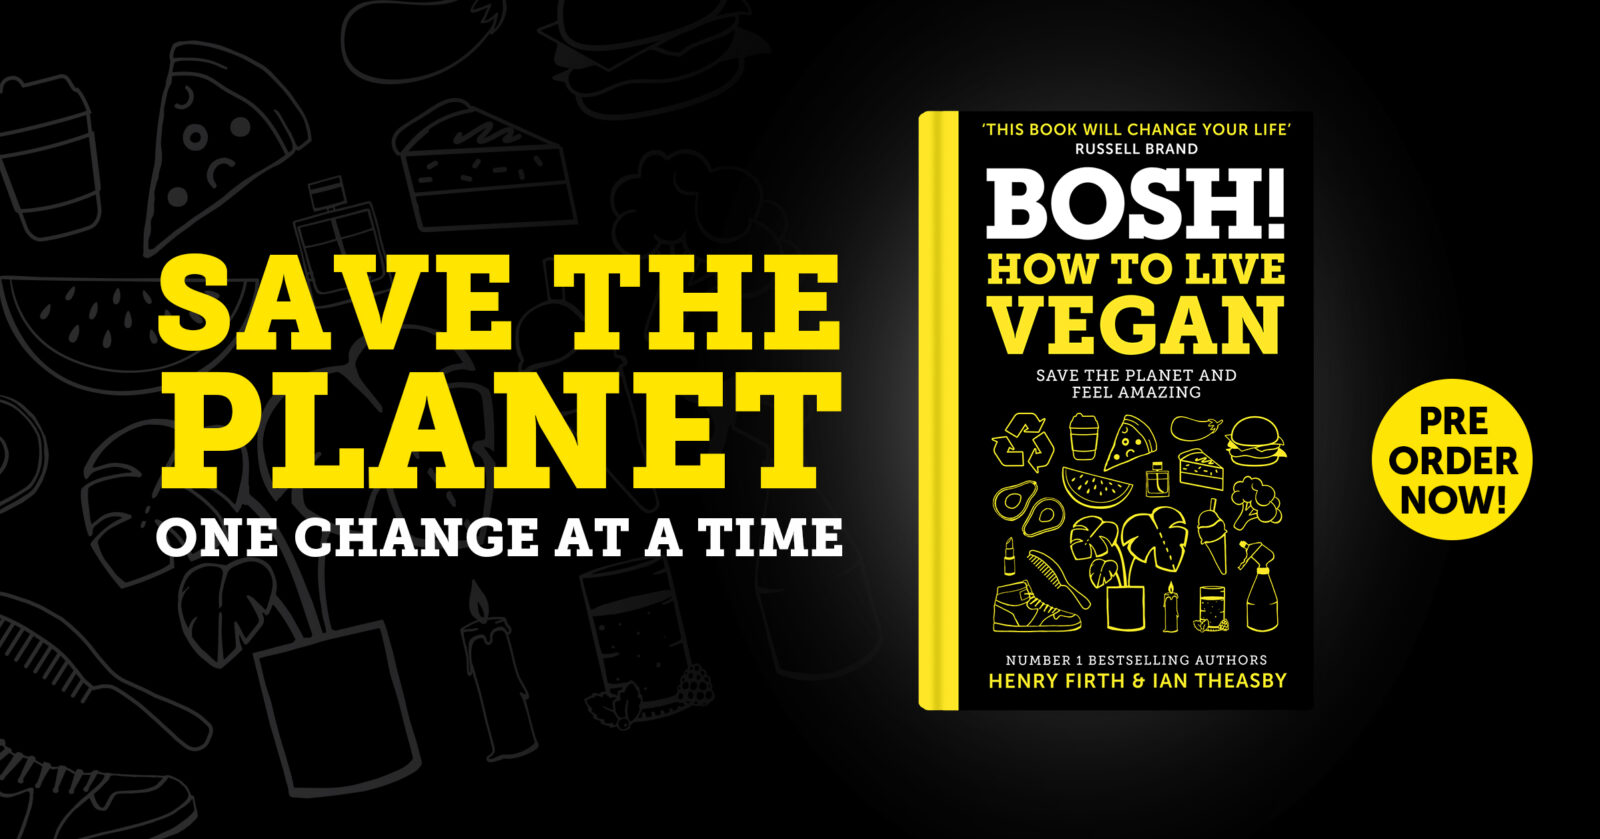 HOW TO LIVE VEGAN TO BE RELEASED ON 3RD OCTOBER IN THE UK!